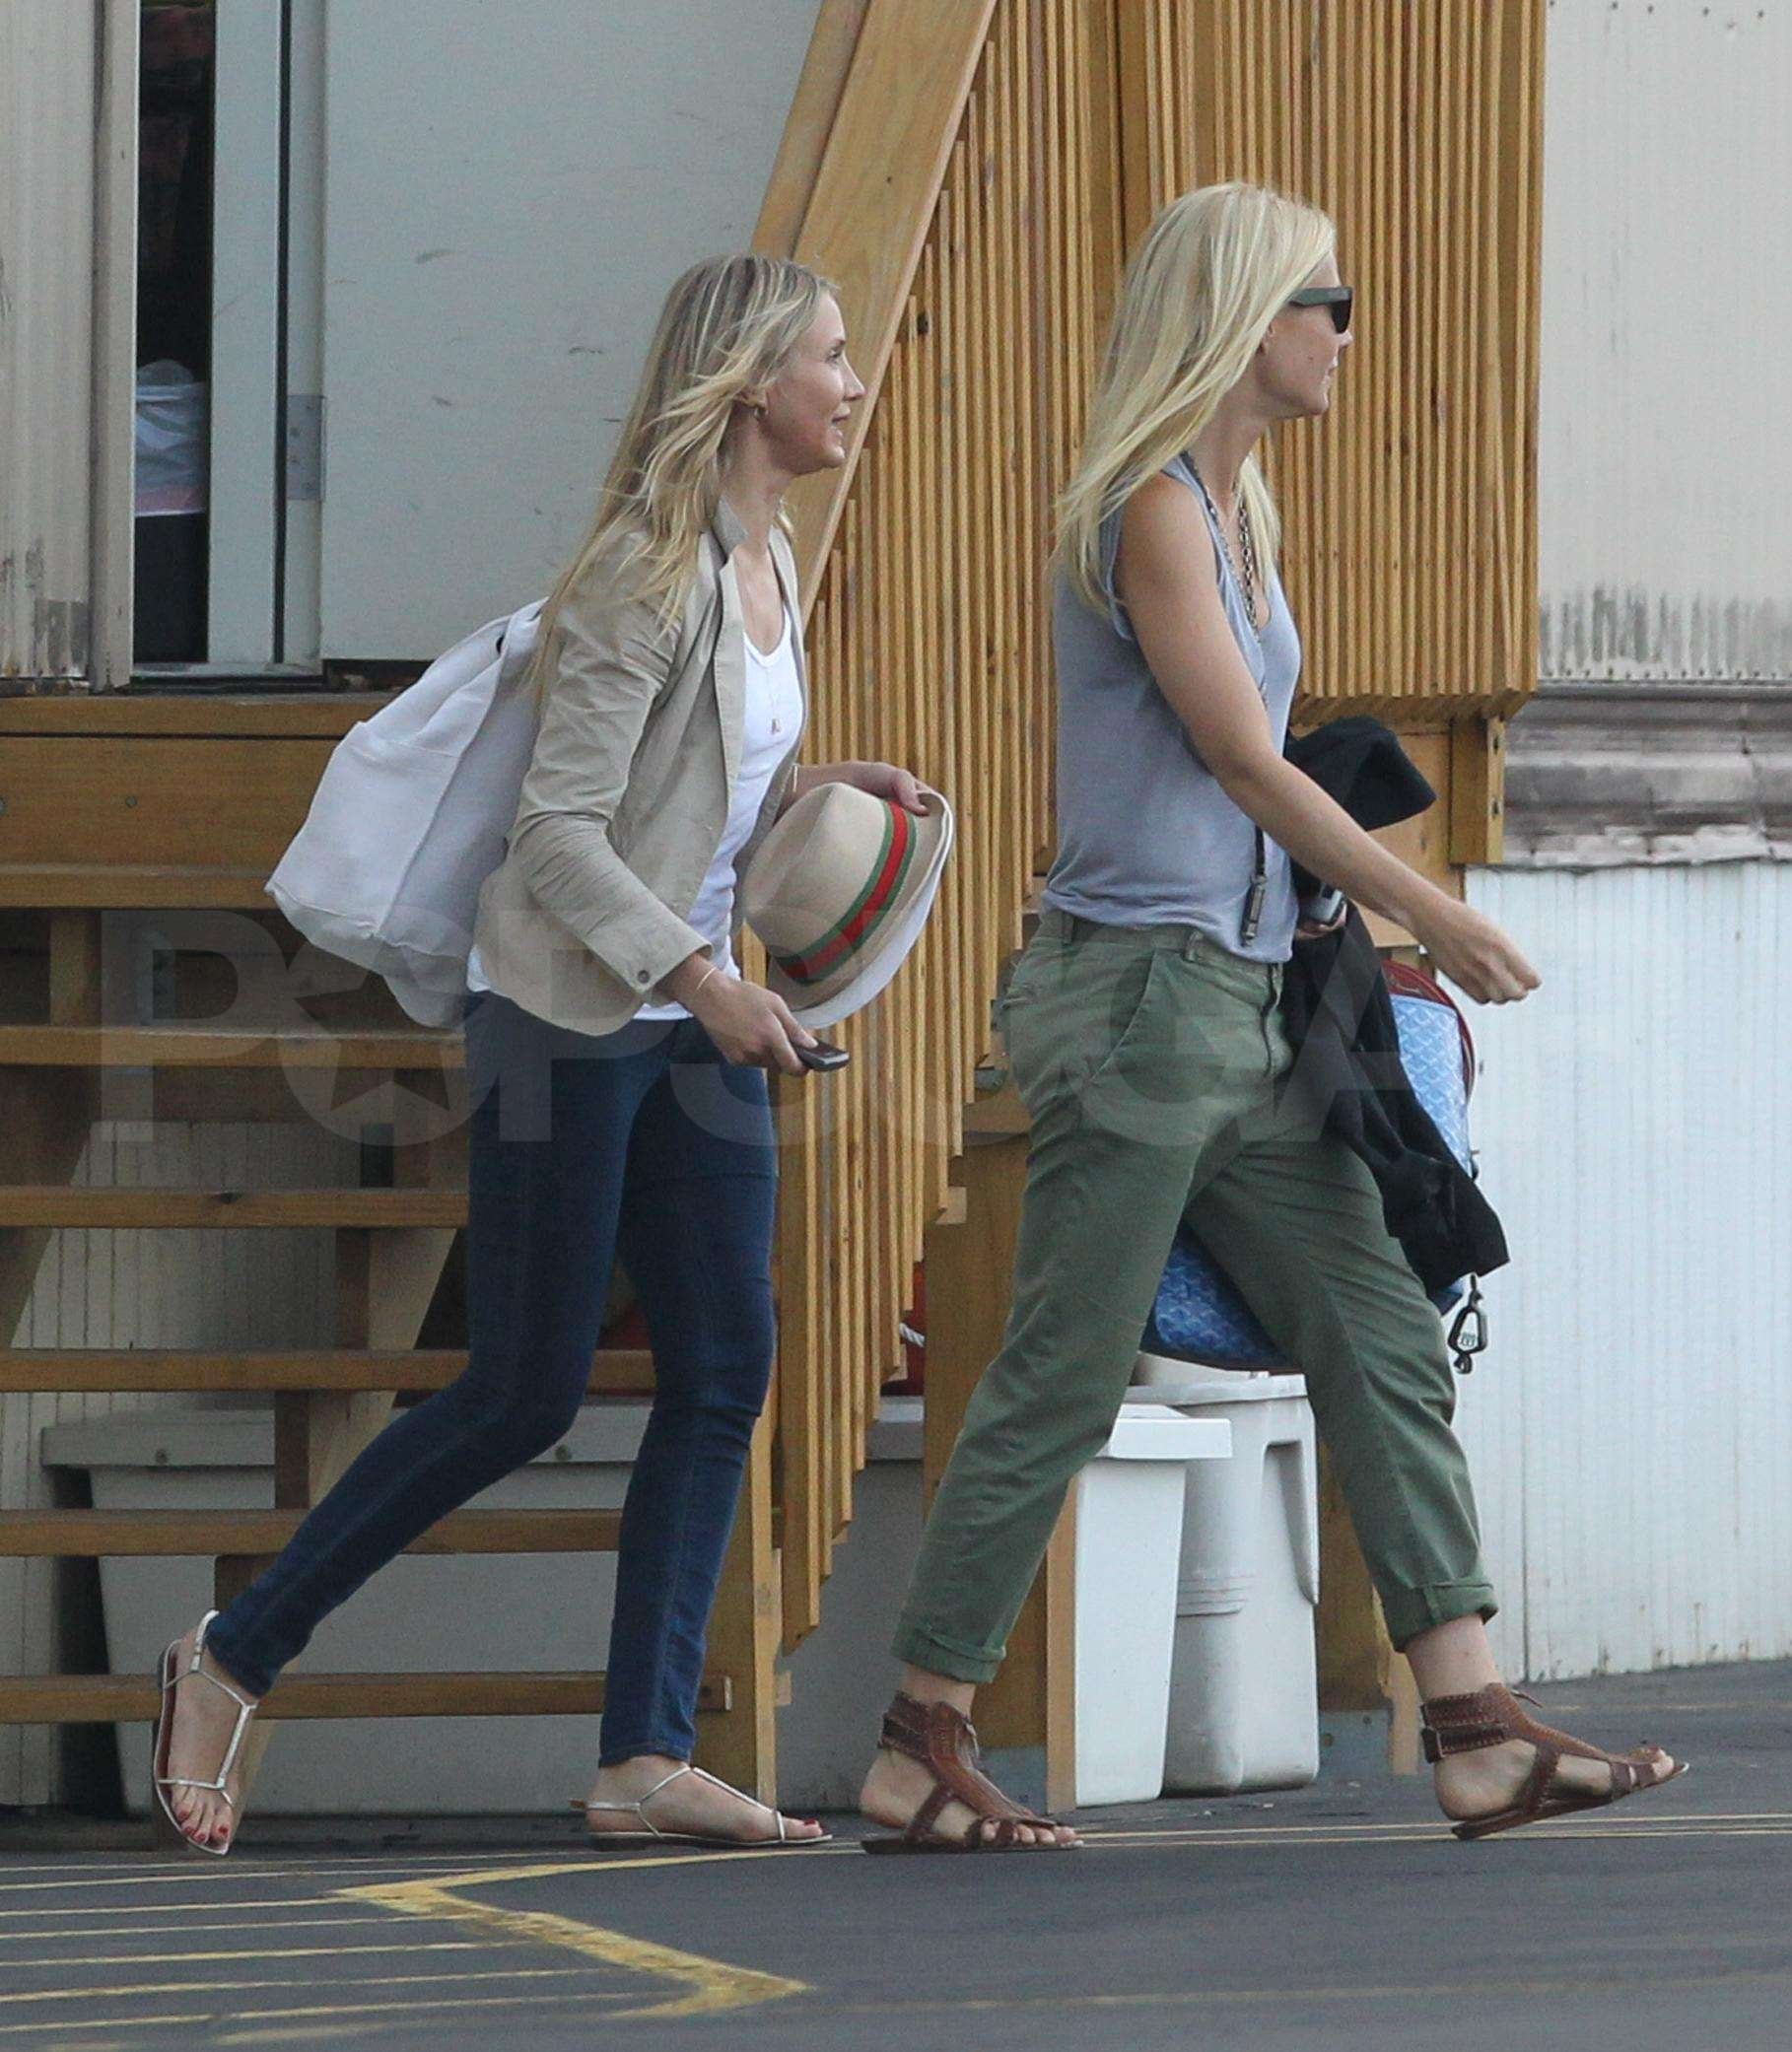 Pictures of Cameron, Gwyneth and Alex